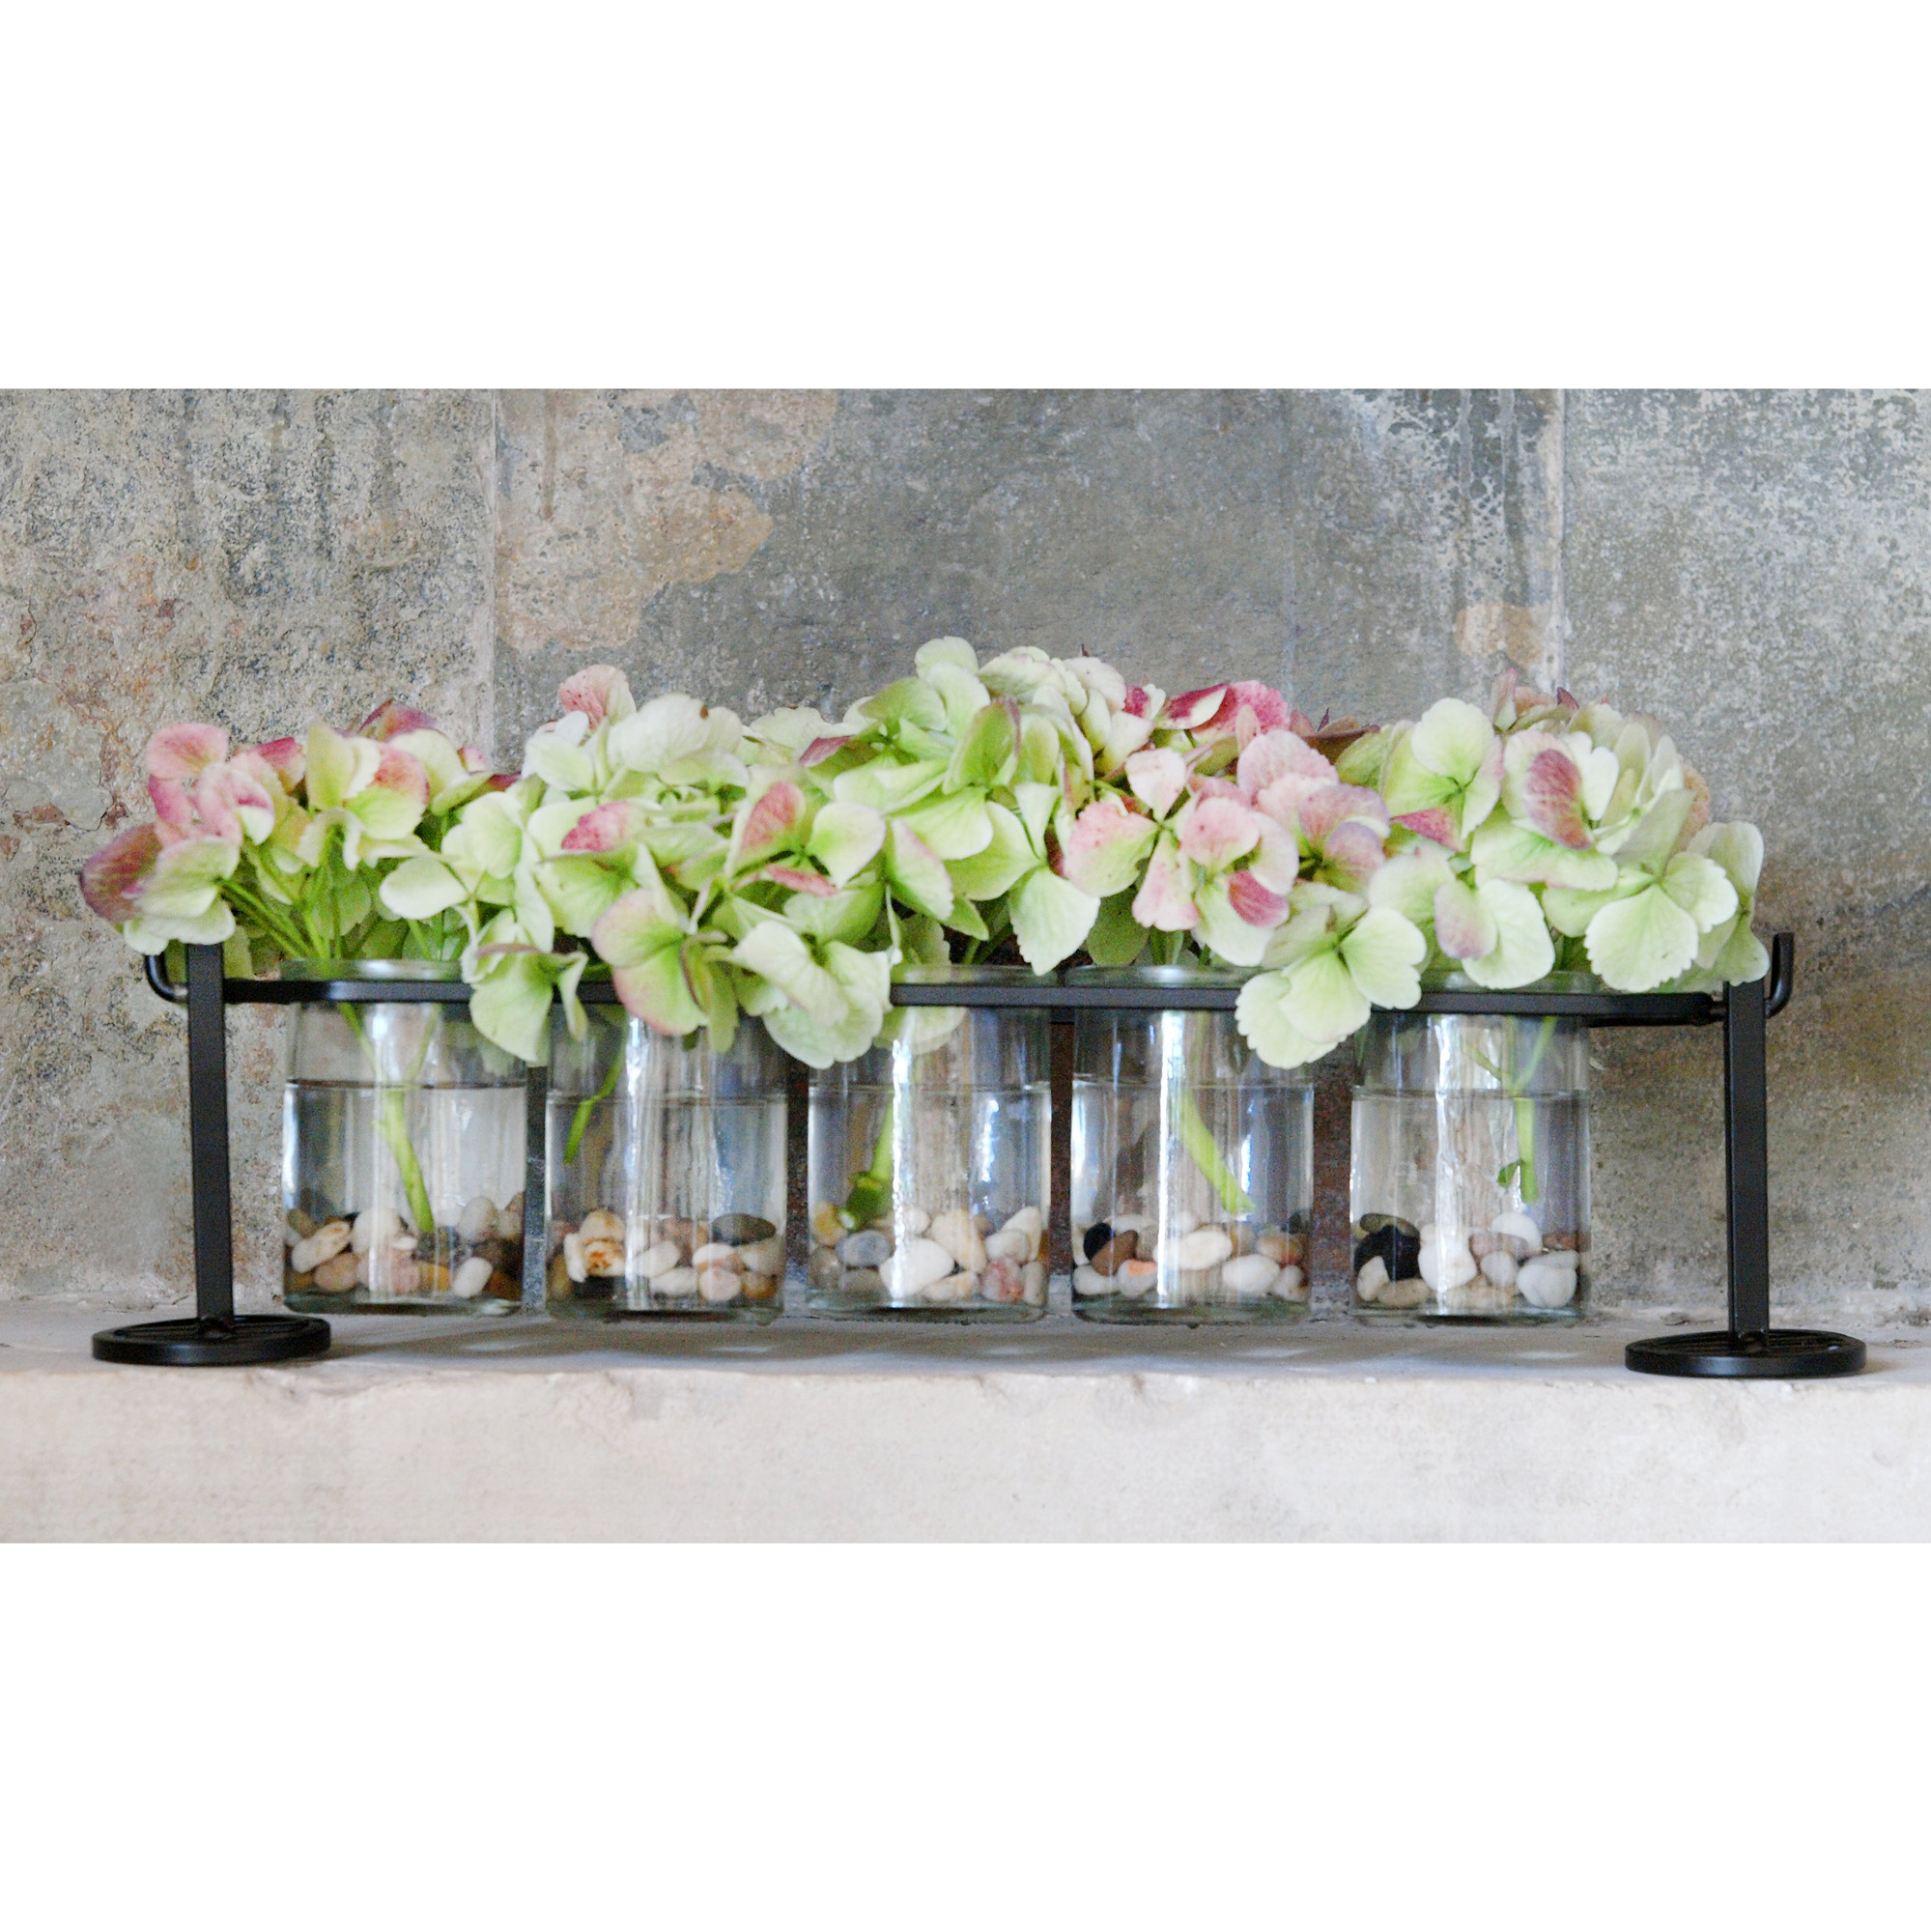 1c2c16c11bae Details about Couronne Co Five Round Glass Containers and Metal Stand,  M480-200-00-P, 18 inche